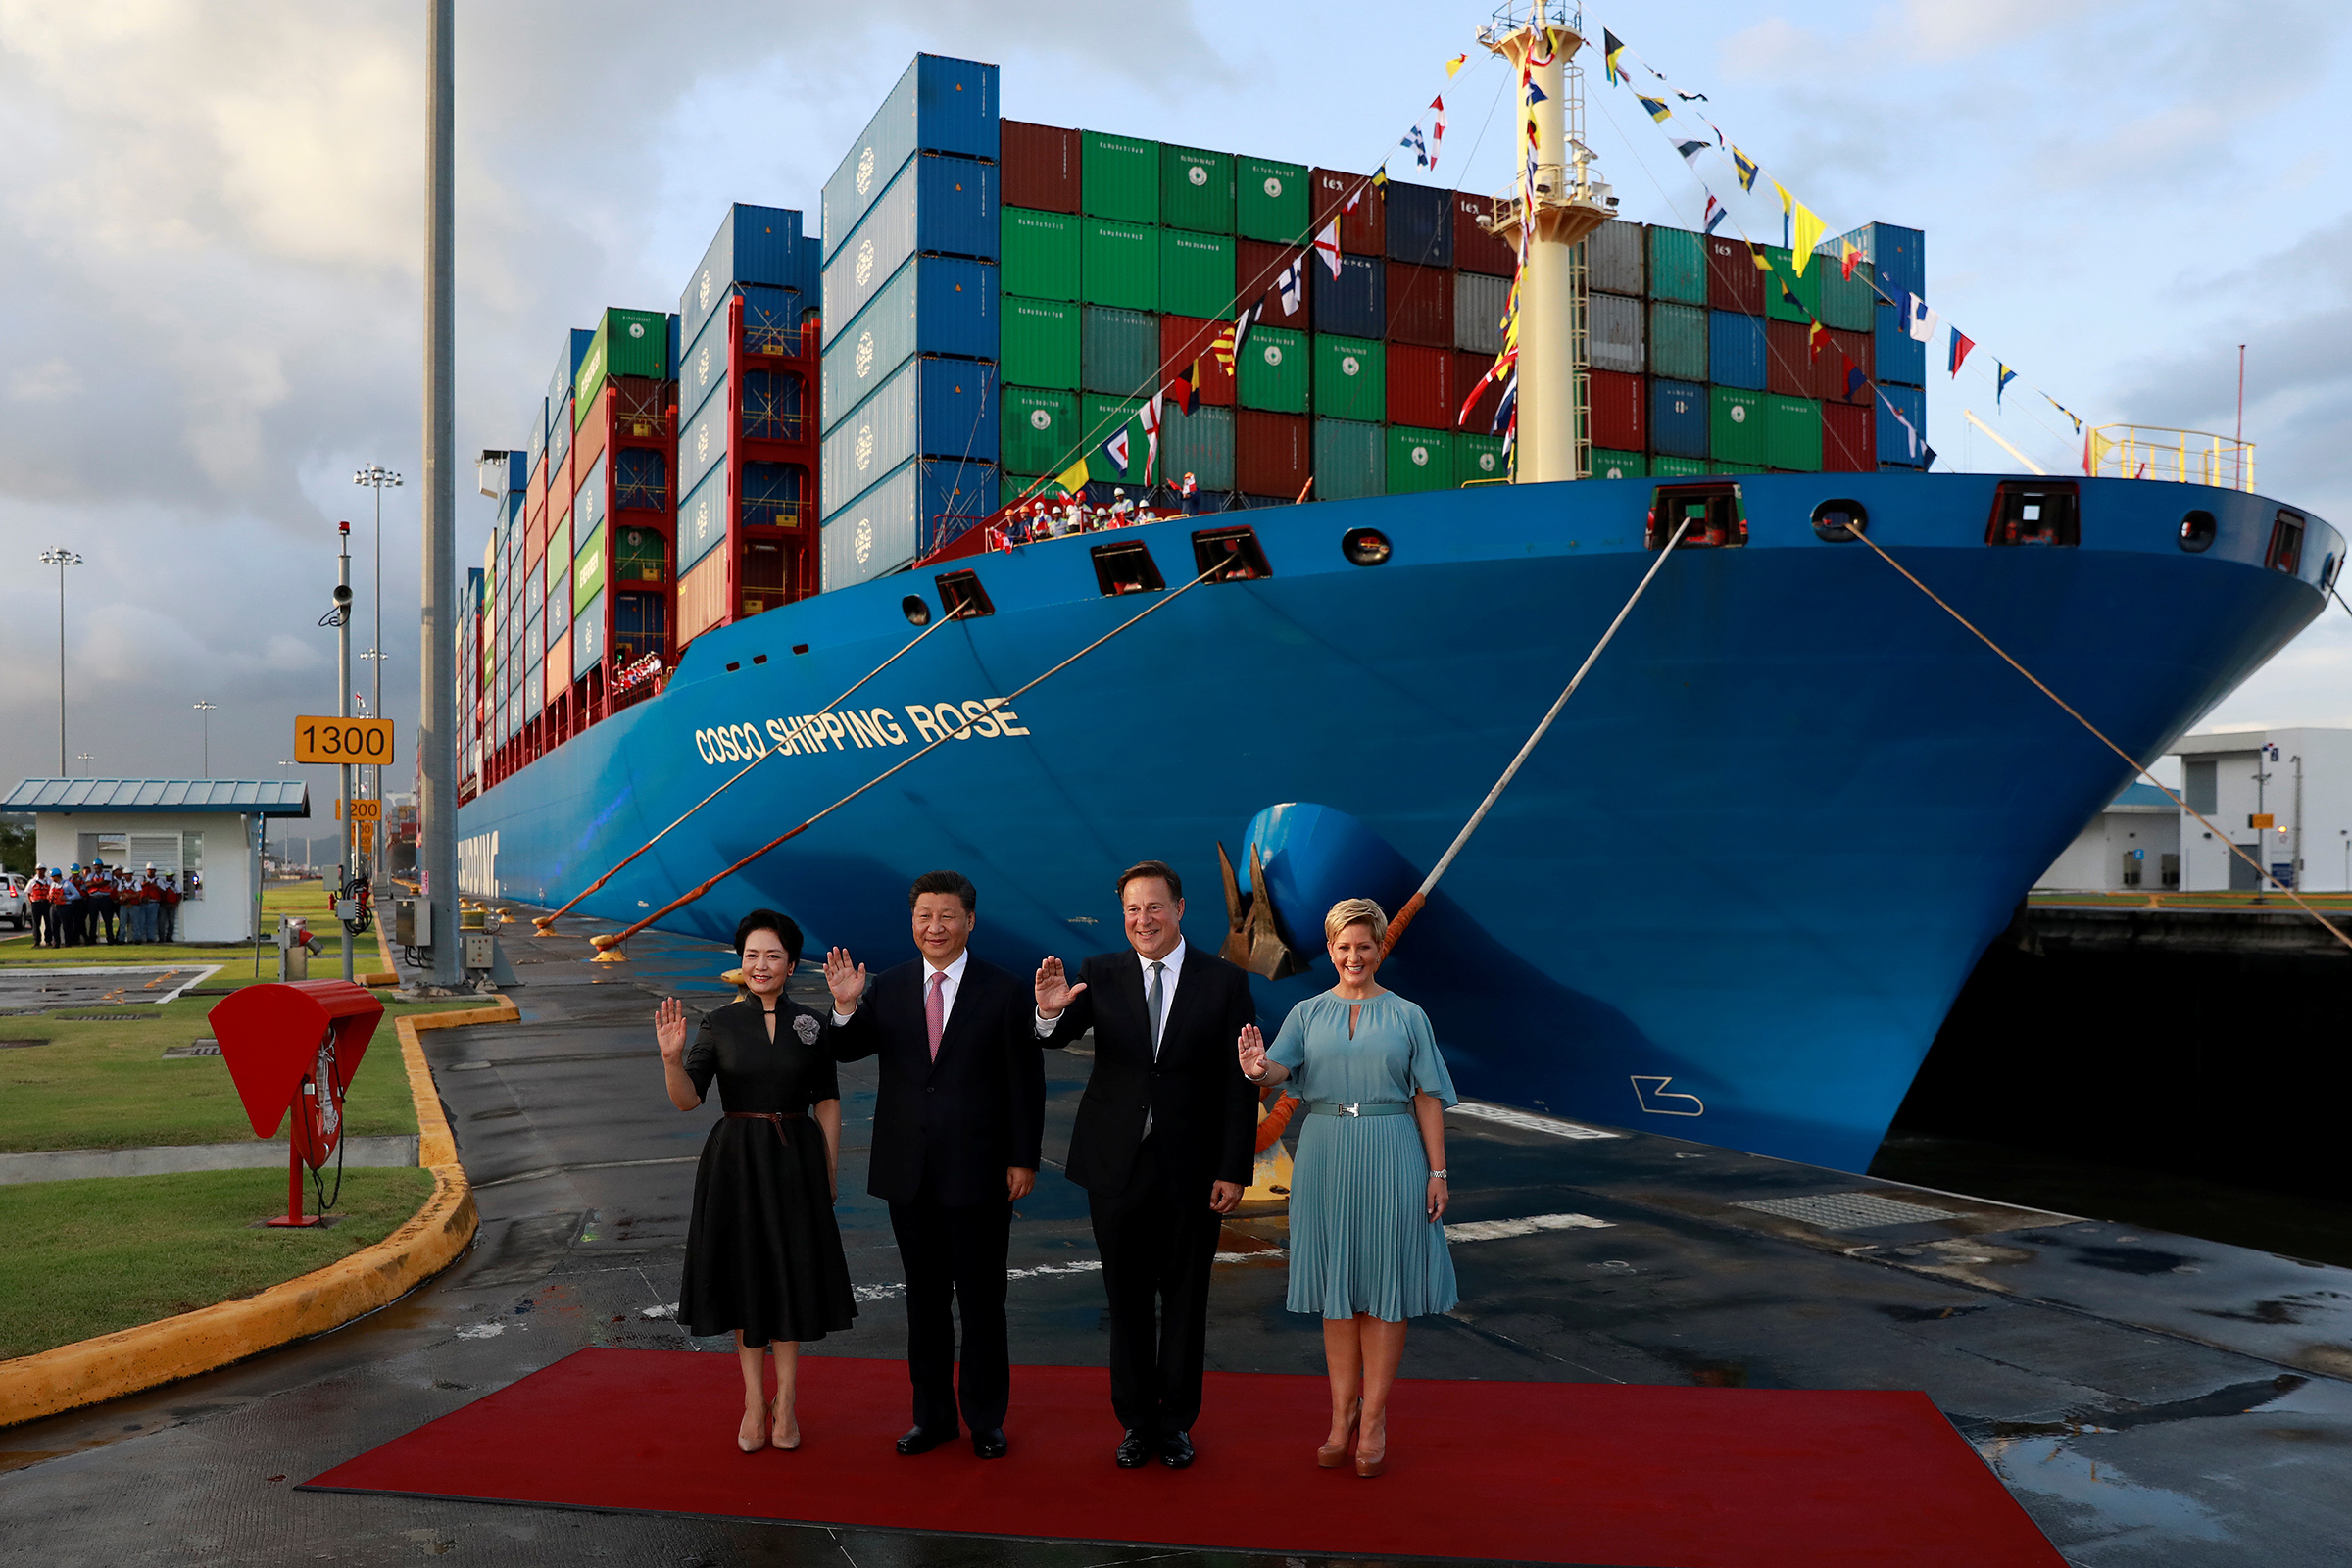 China's President Xi Jinping and his wife Peng Liyuan with Panama's then President Juan Carlos Varela and First Lady Lorena Castillo in December 2018